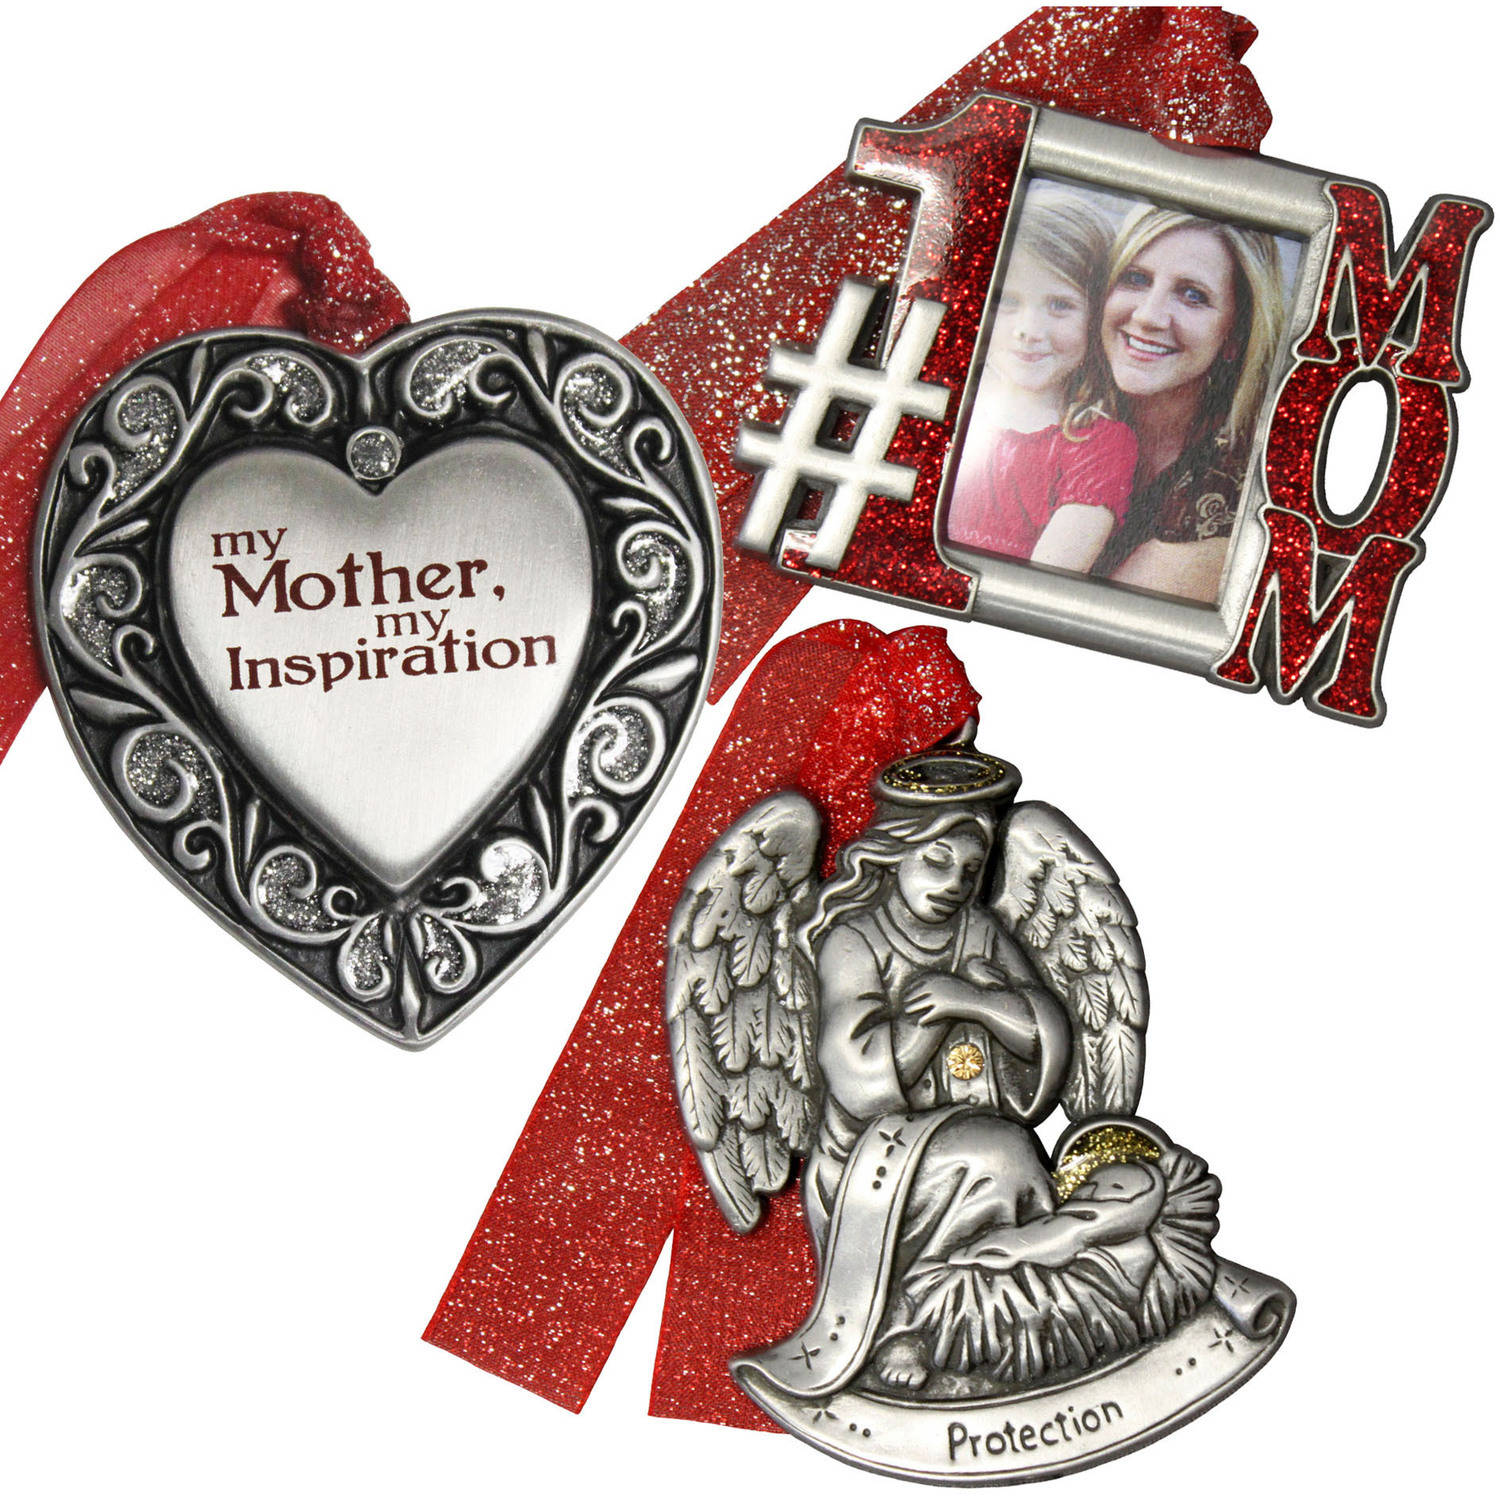 Personalized Gloria Duchin Mother's Christmas Ornament 3-Piece Set